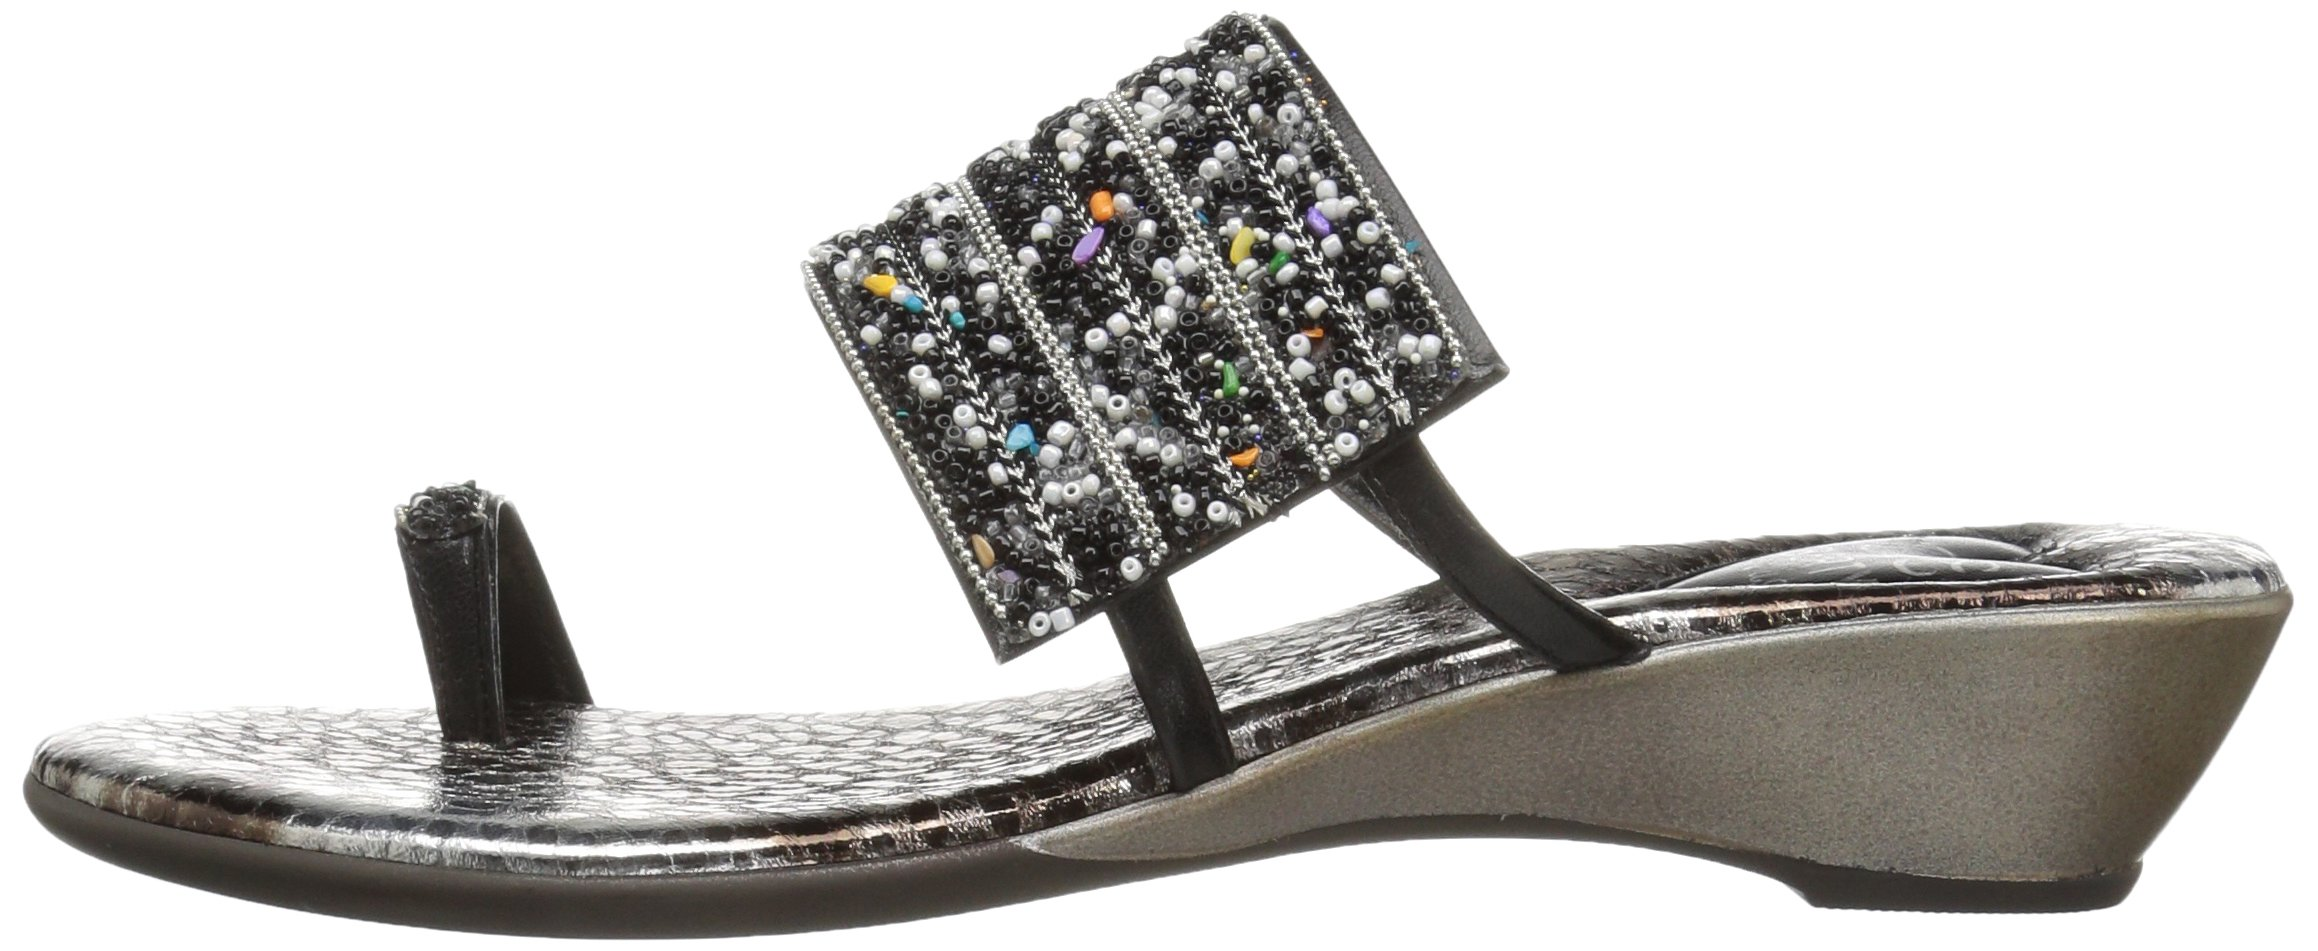 Love & Liberty Women's Sammy-Ll Toe Ring Sandal, Black, 7 M US by Love & Liberty (Image #5)